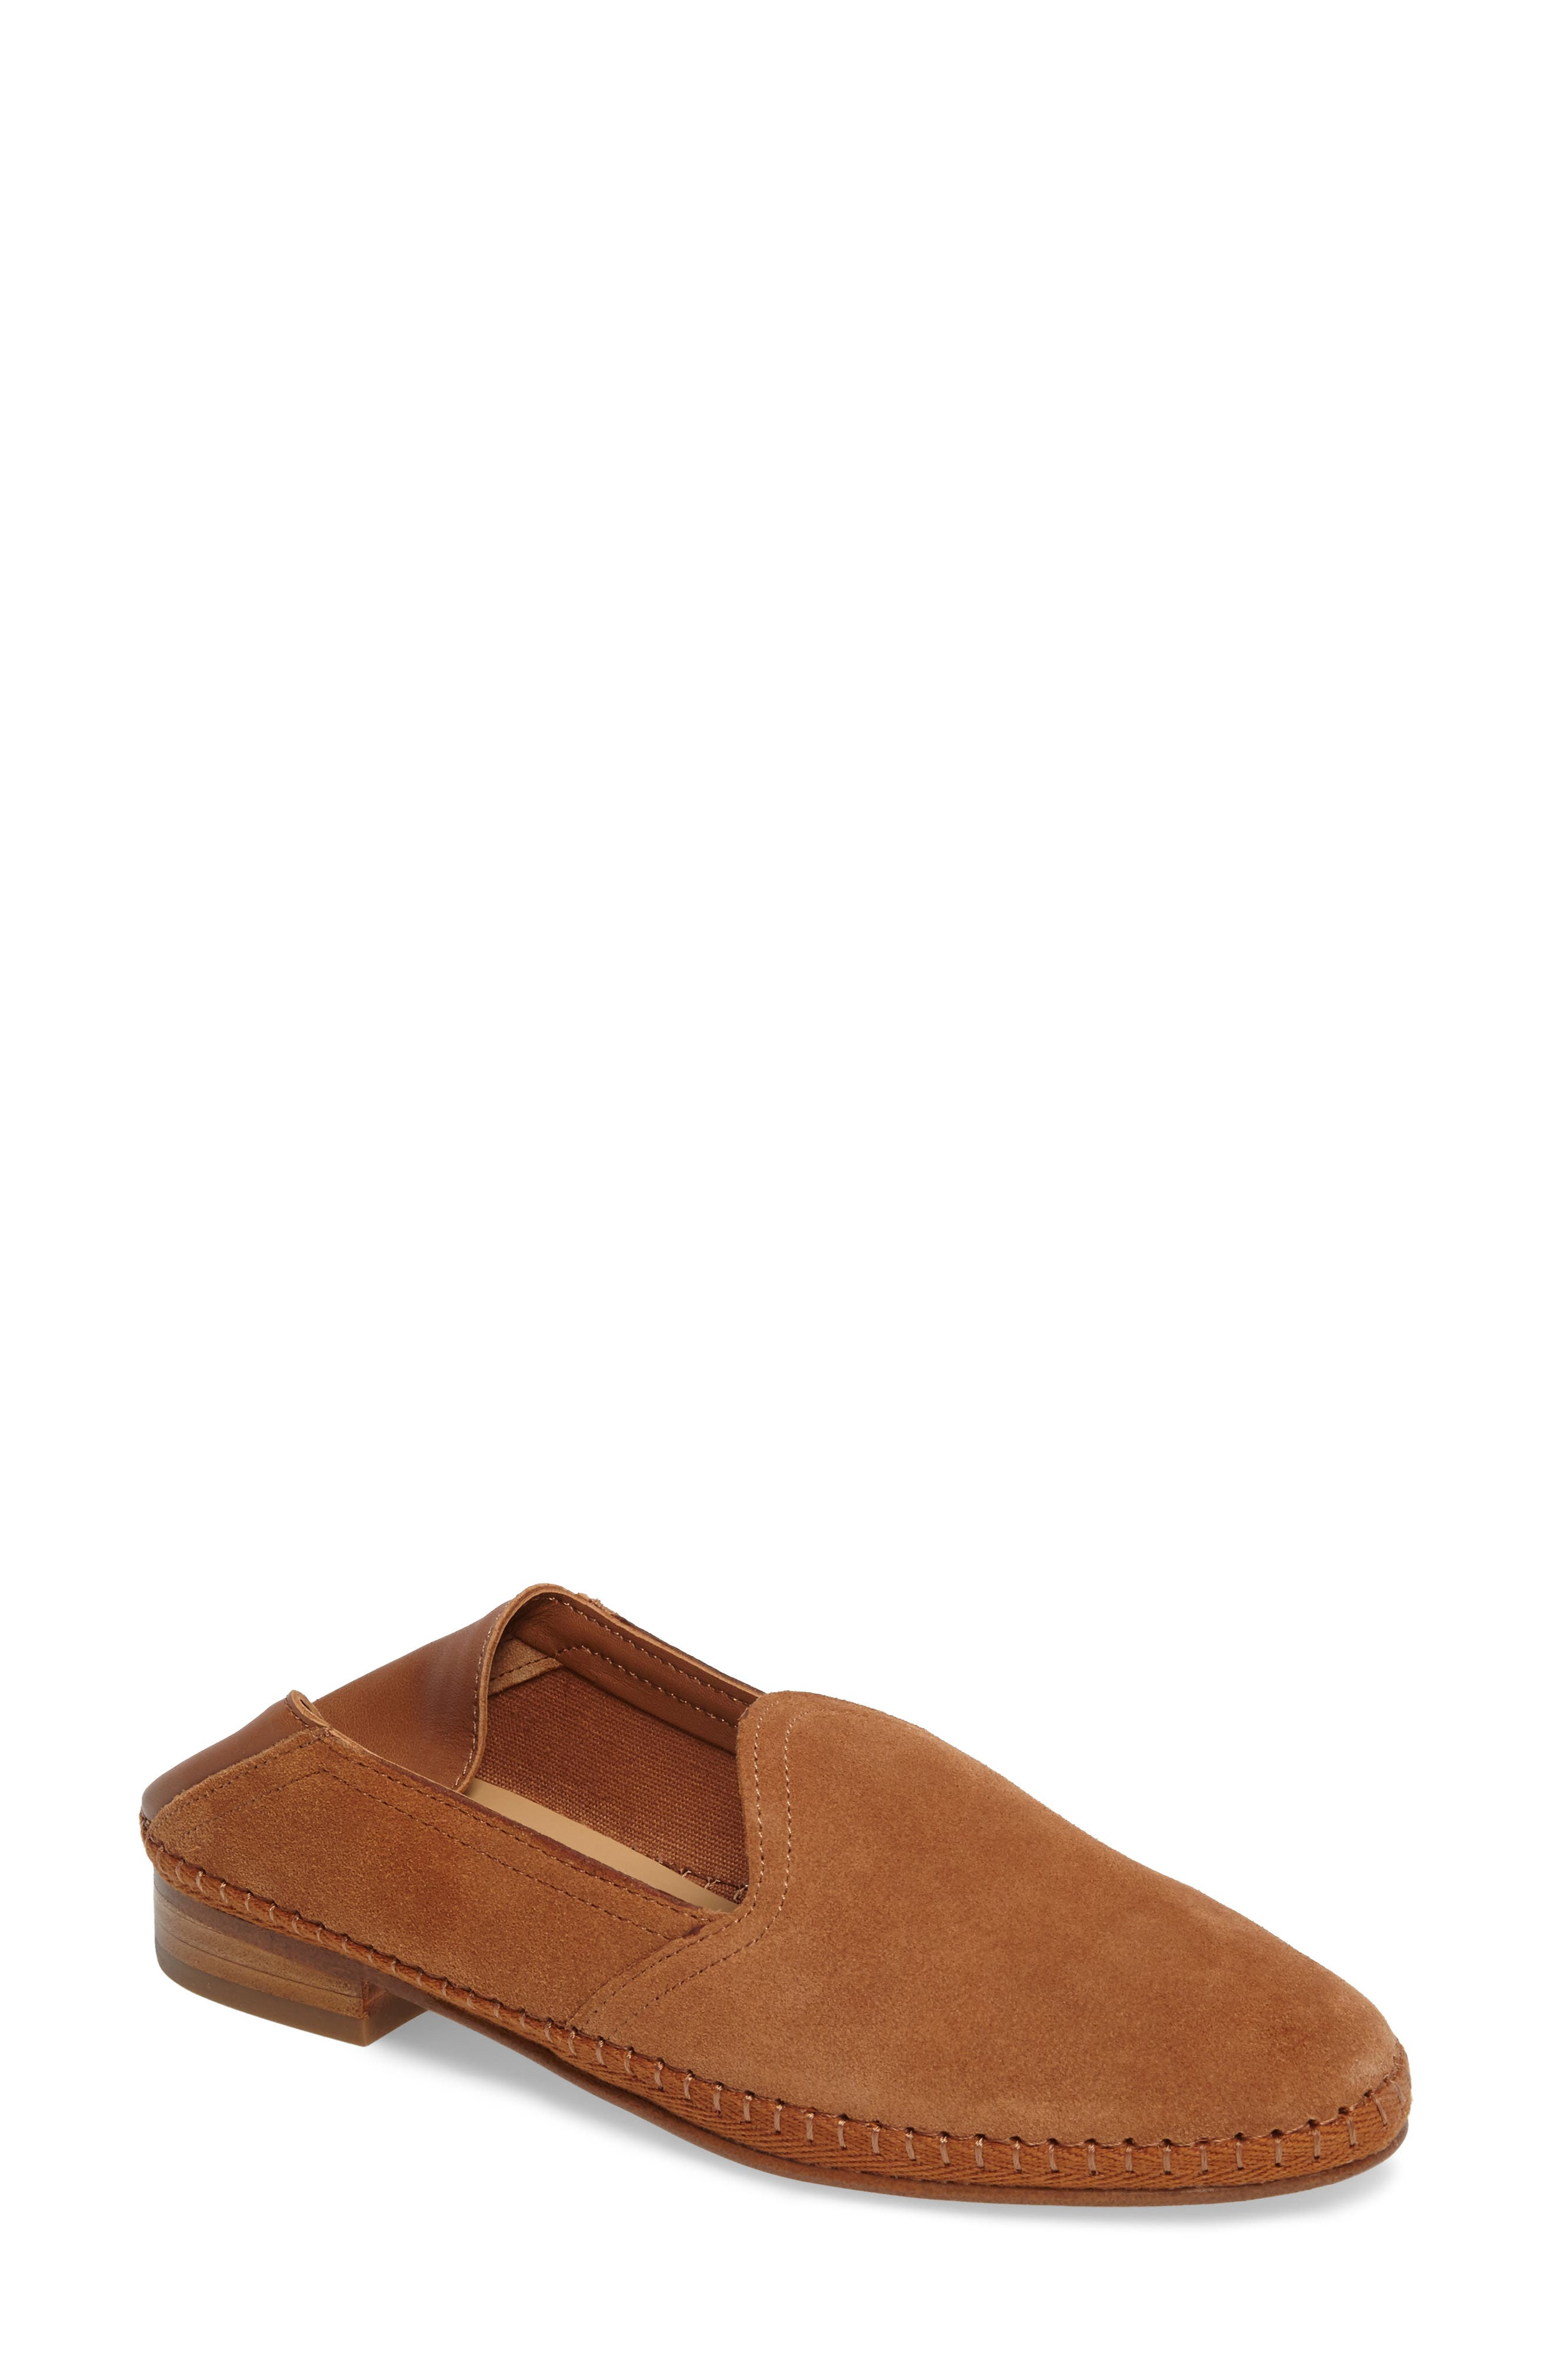 Main Image - Soludus Convertible Venetian Loafer (Women)